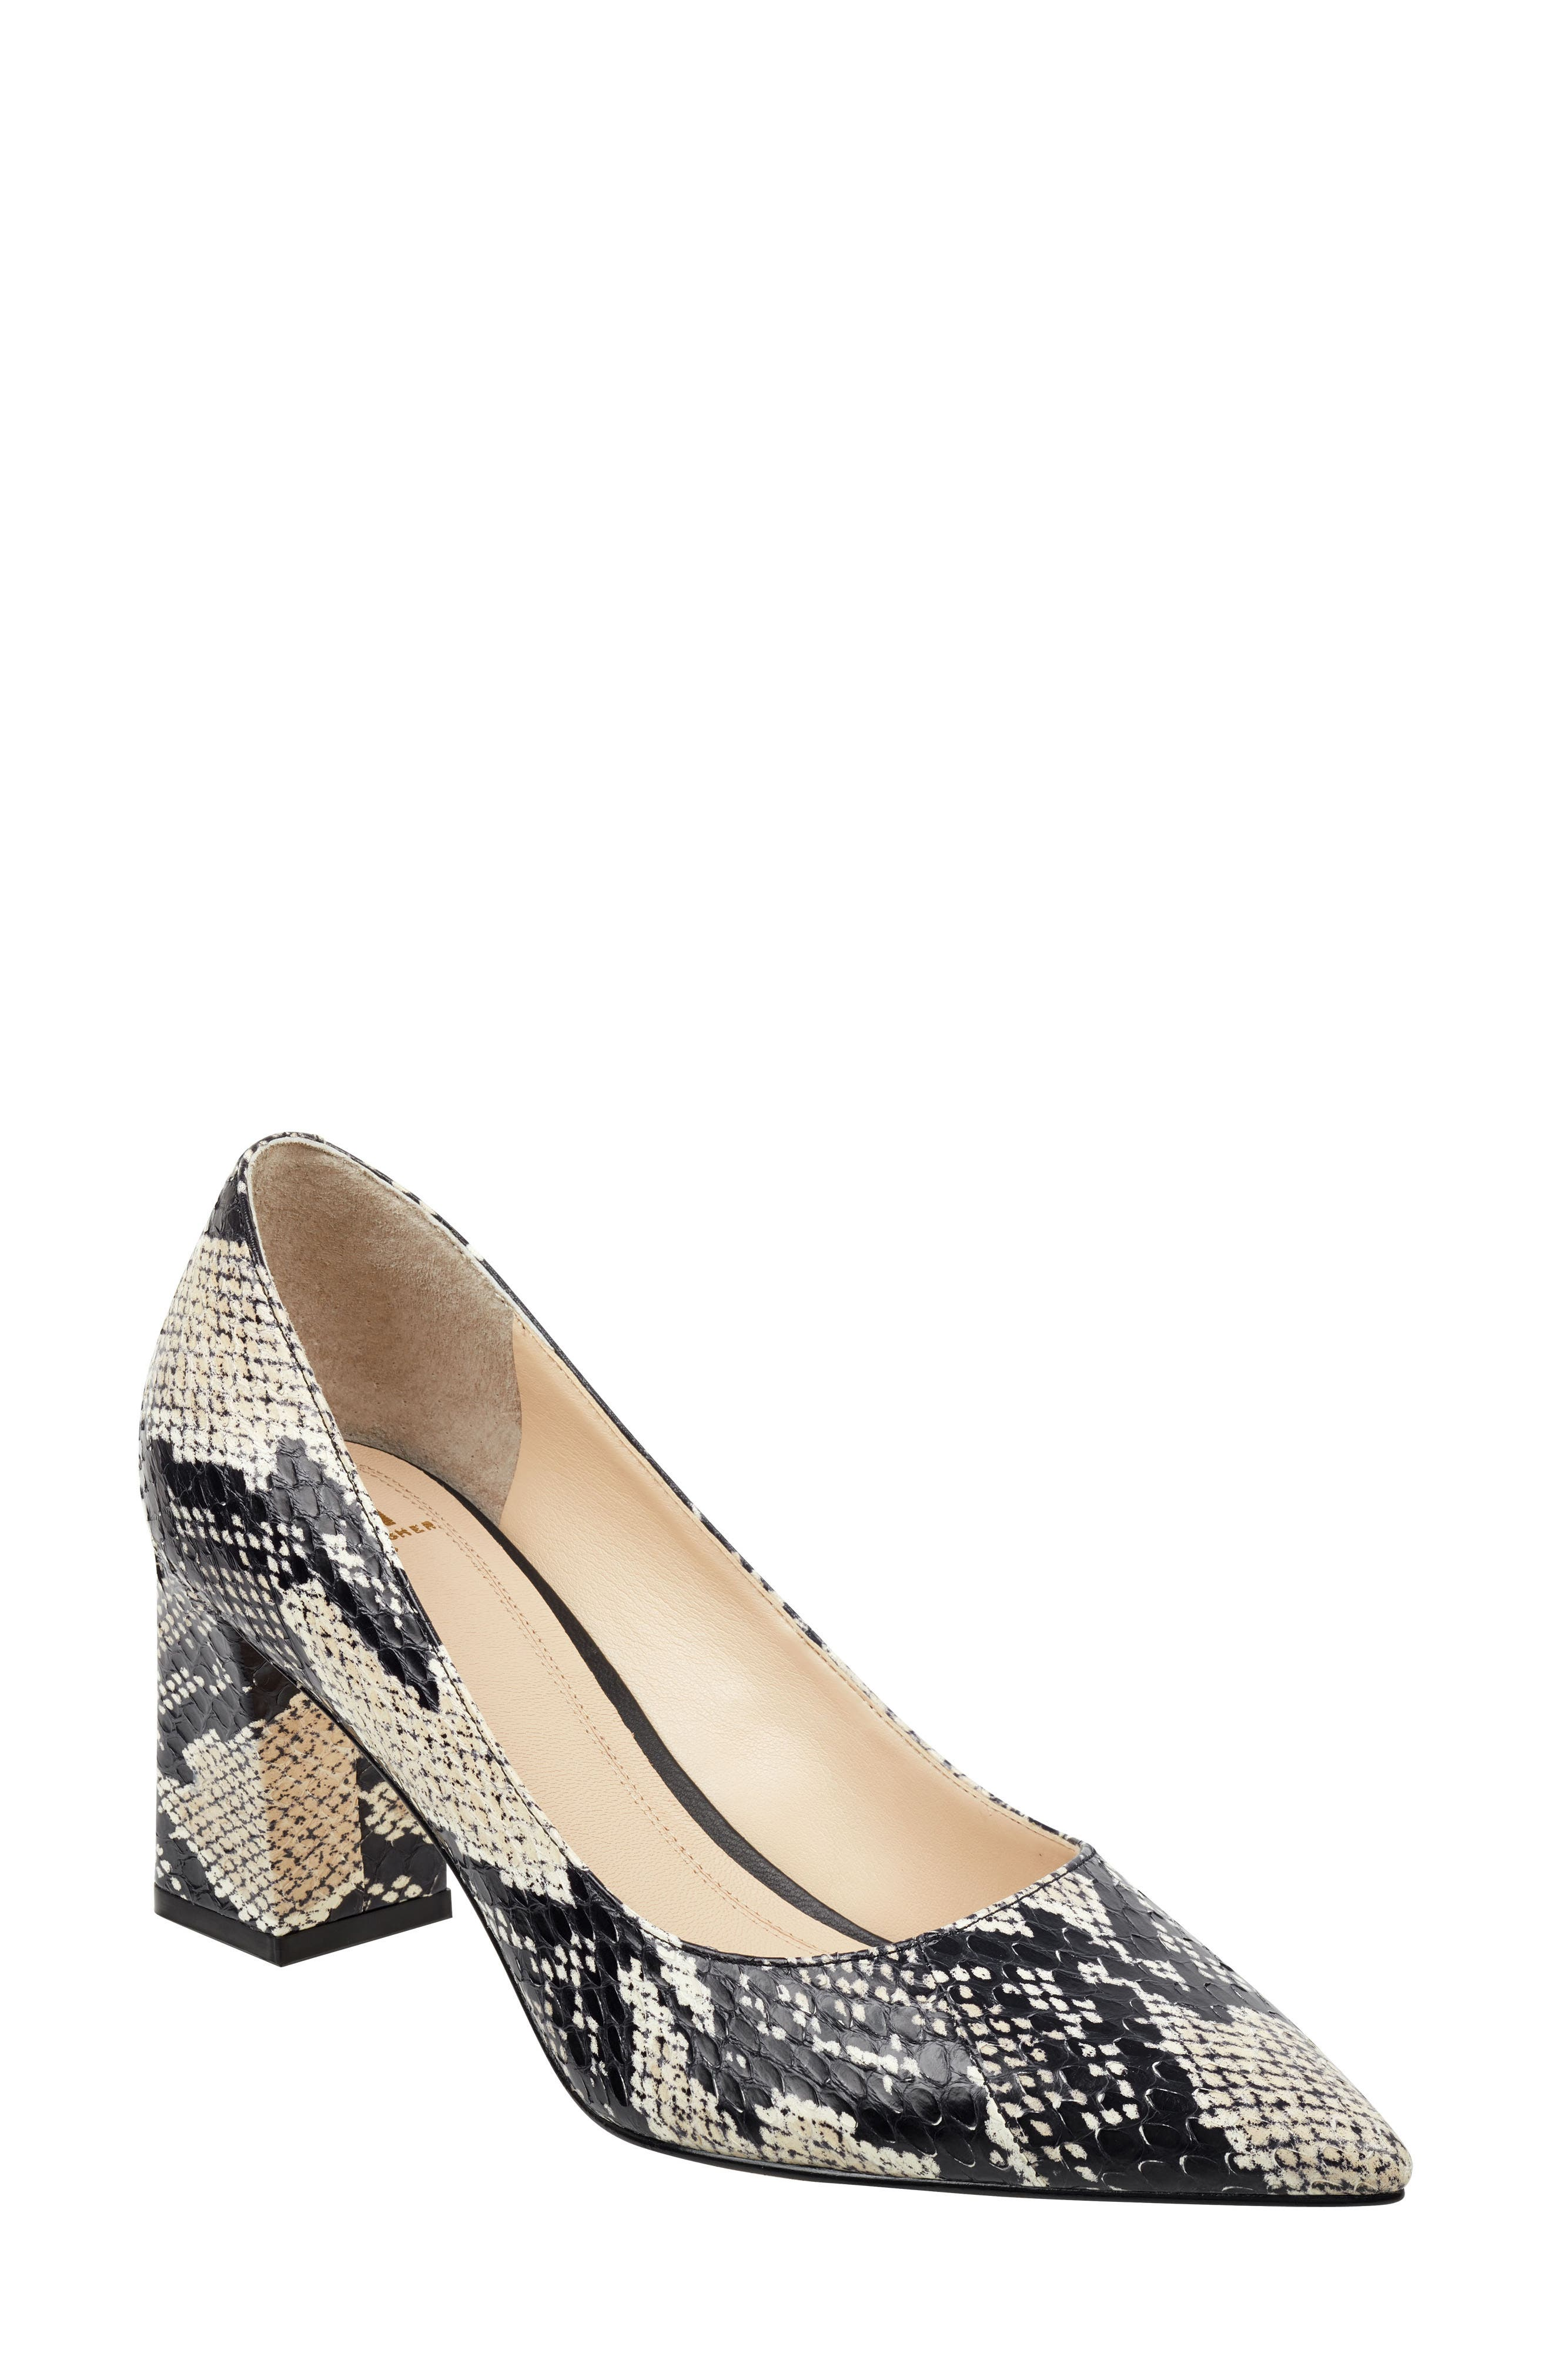 'Zala' Pump,                             Main thumbnail 1, color,                             BEIGE/ BLACK SNAKE PRINT